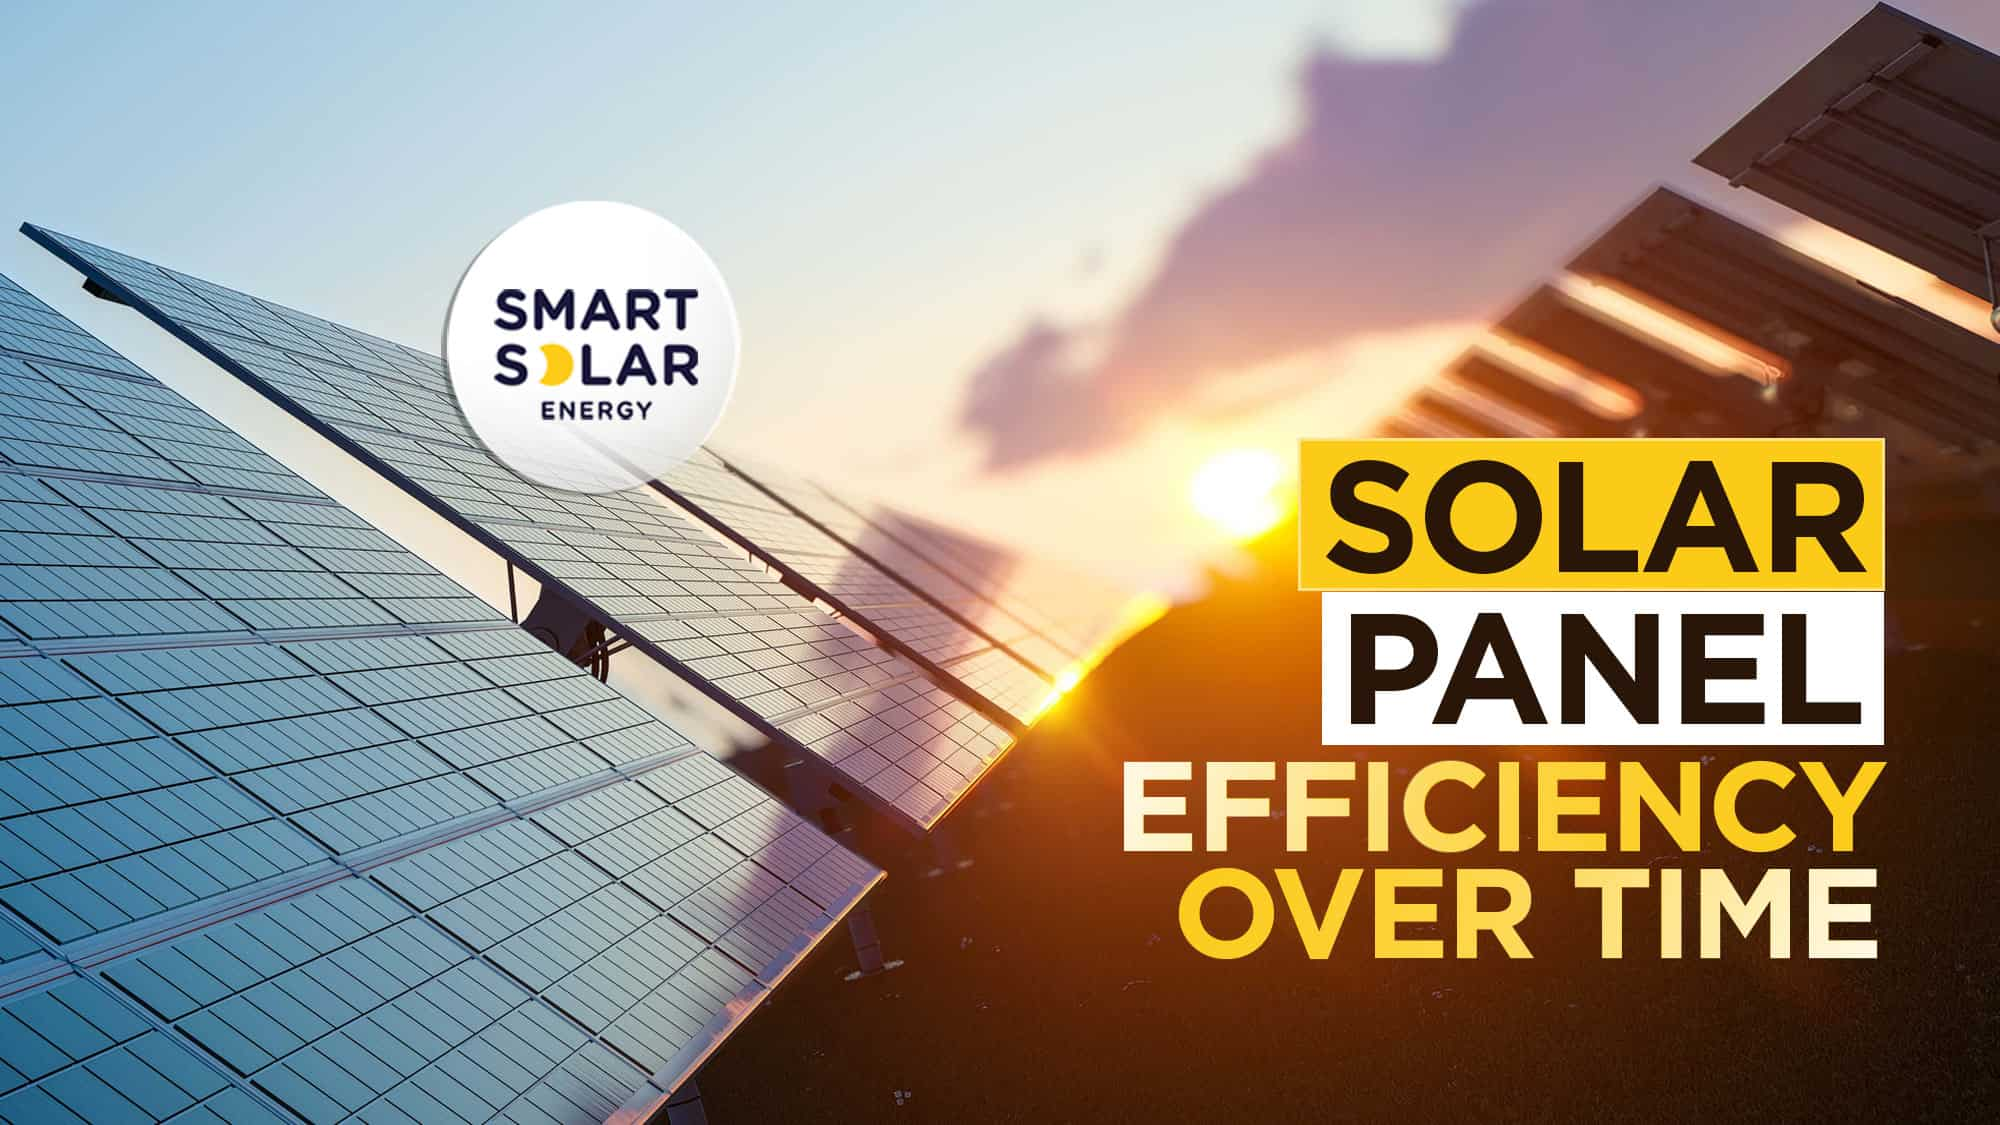 solar panel efficiency over time